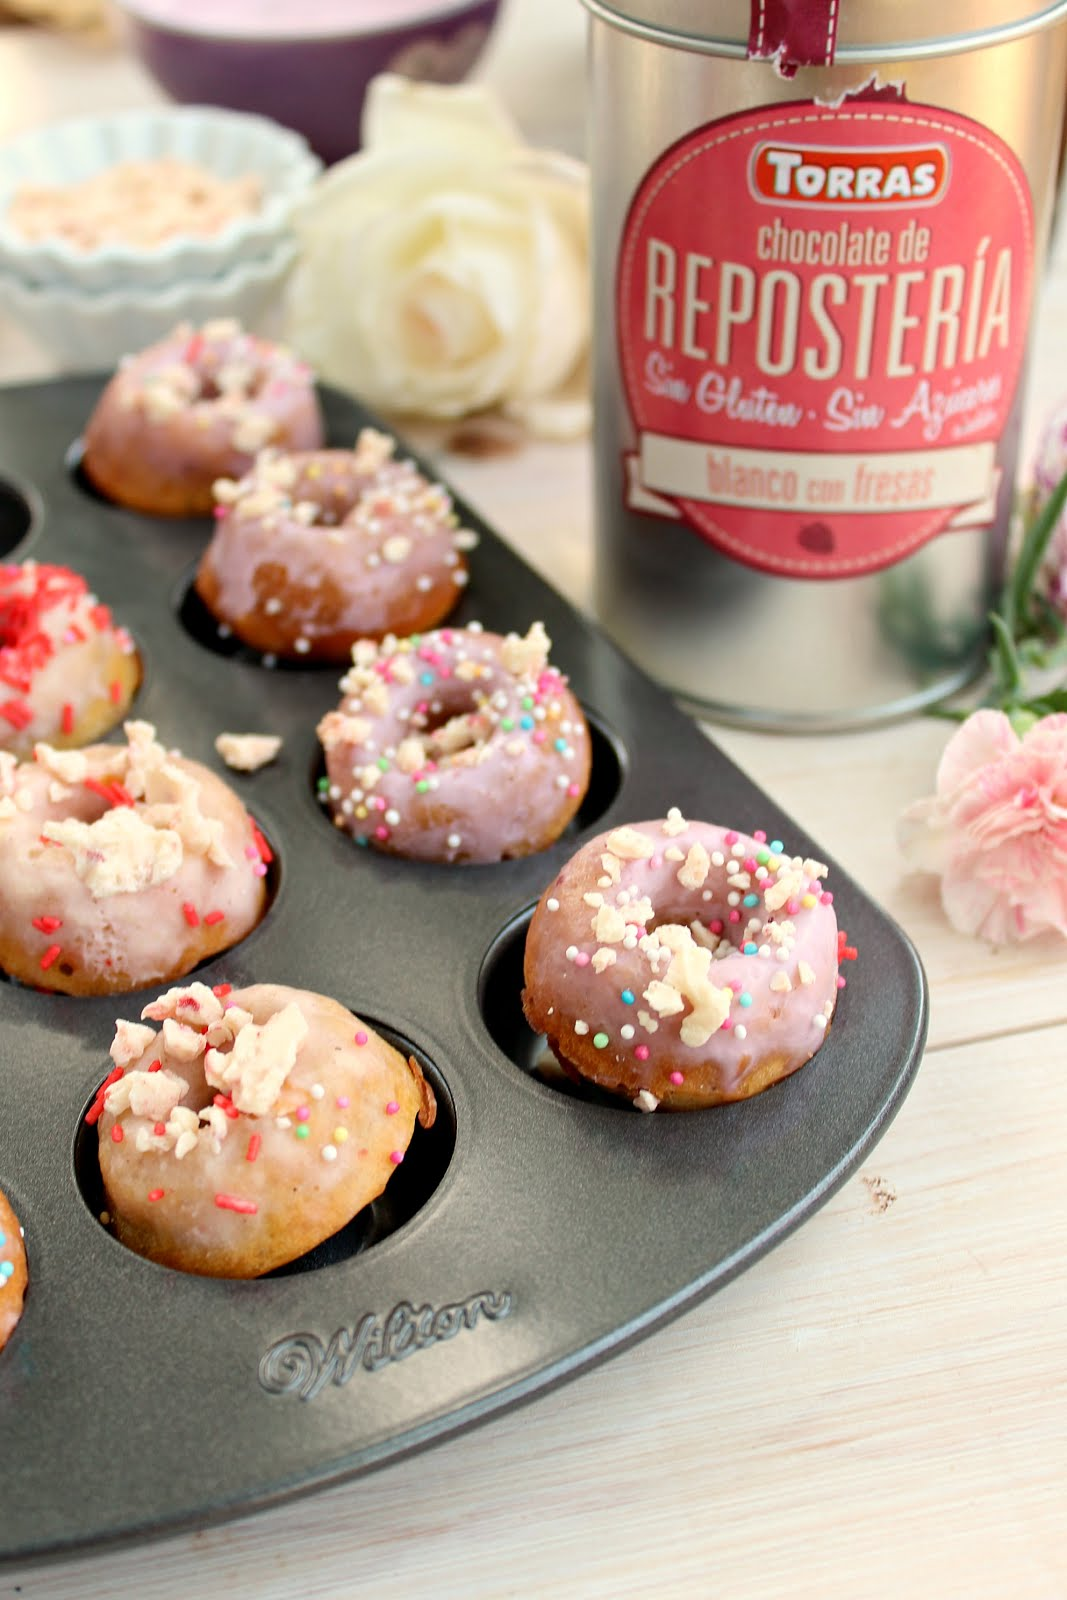 Skinny Strawberry White Chocolate Glazed Donuts - high in protein and low in sugar!